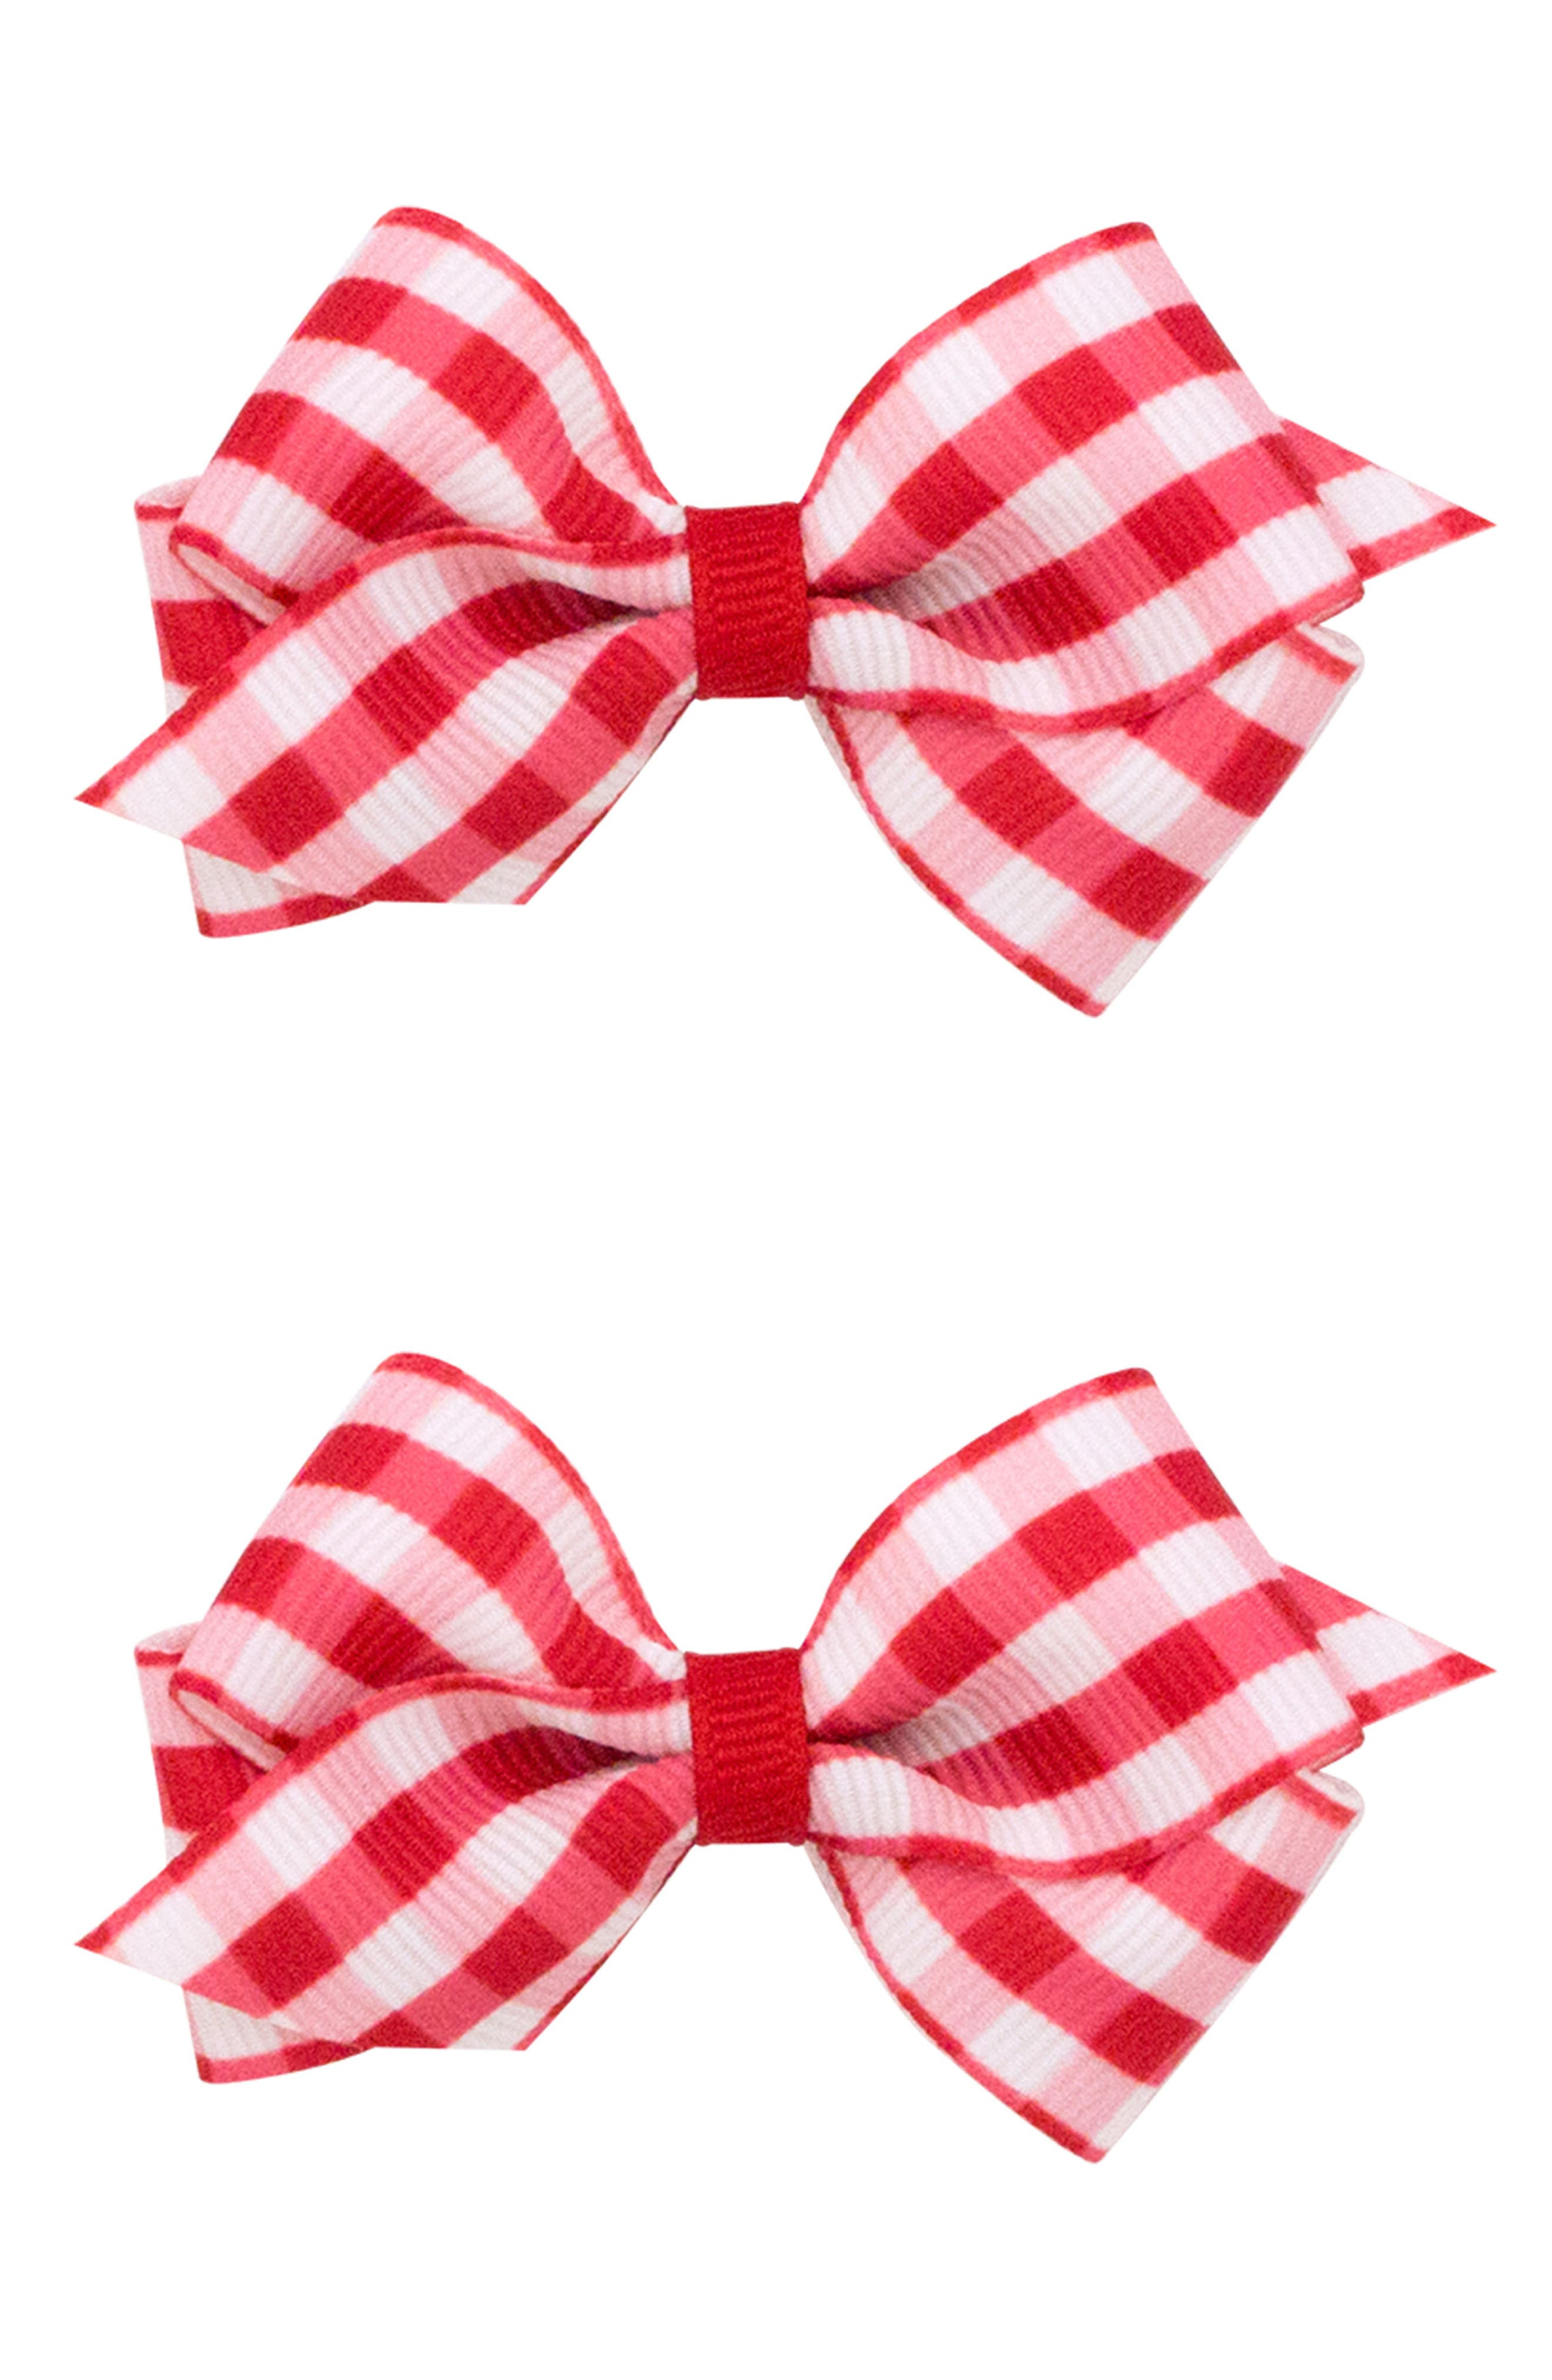 2-Pack Gingham Bow Clips,                             Main thumbnail 1, color,                             Red